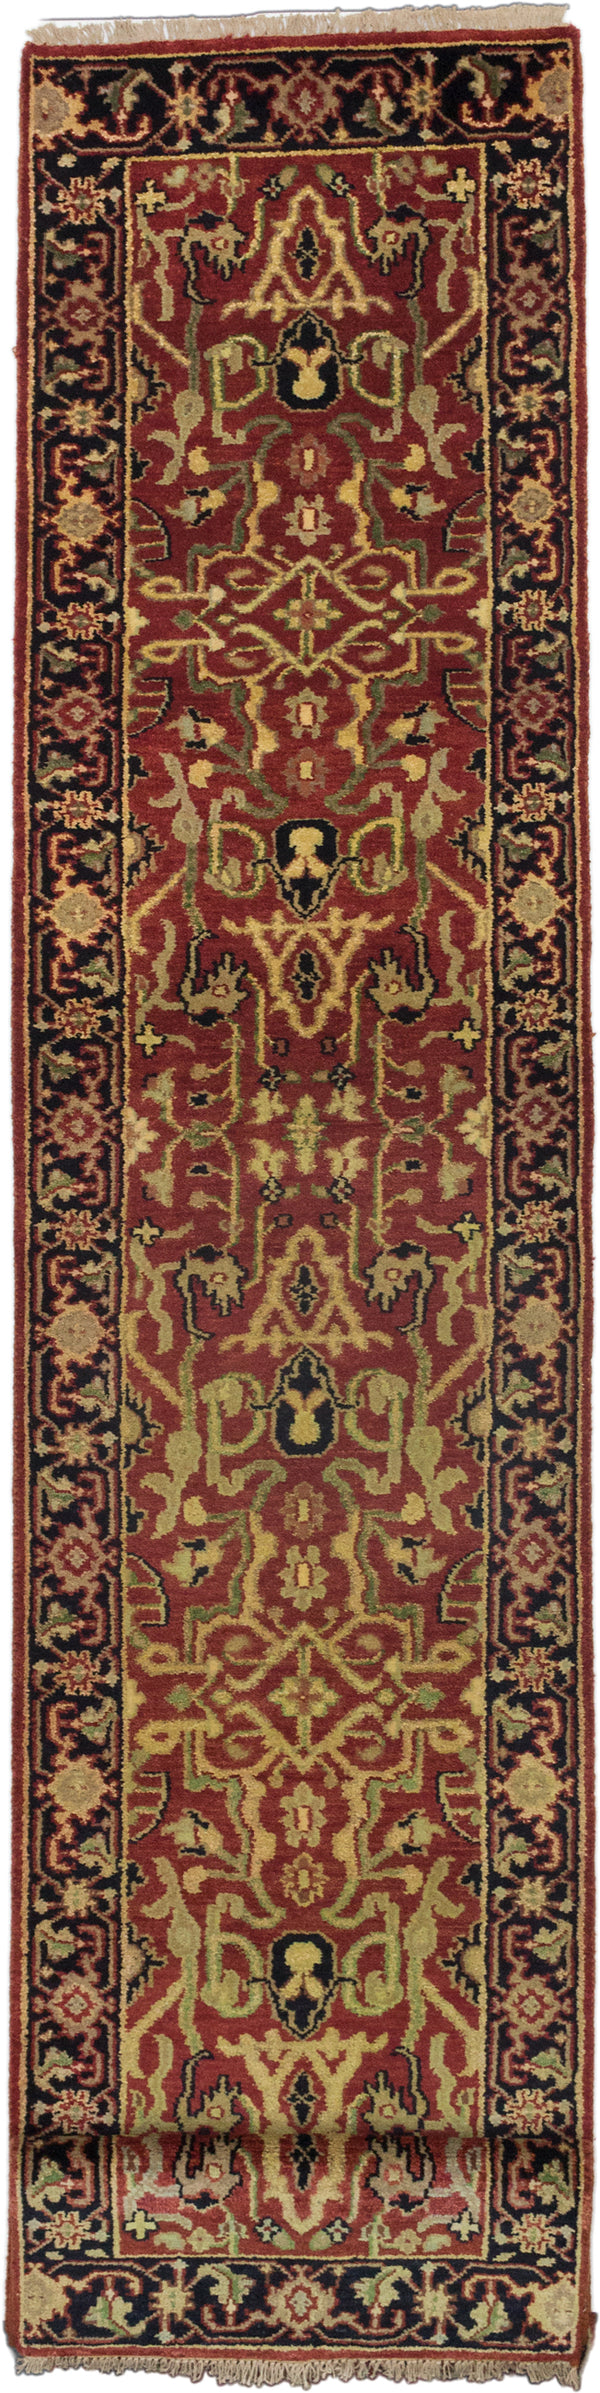 "Hand-knotted Indian Floral  Traditional Serapi-Heritage Runner rug  Black, Dark Burgundy 2'7 x 19'9"" """